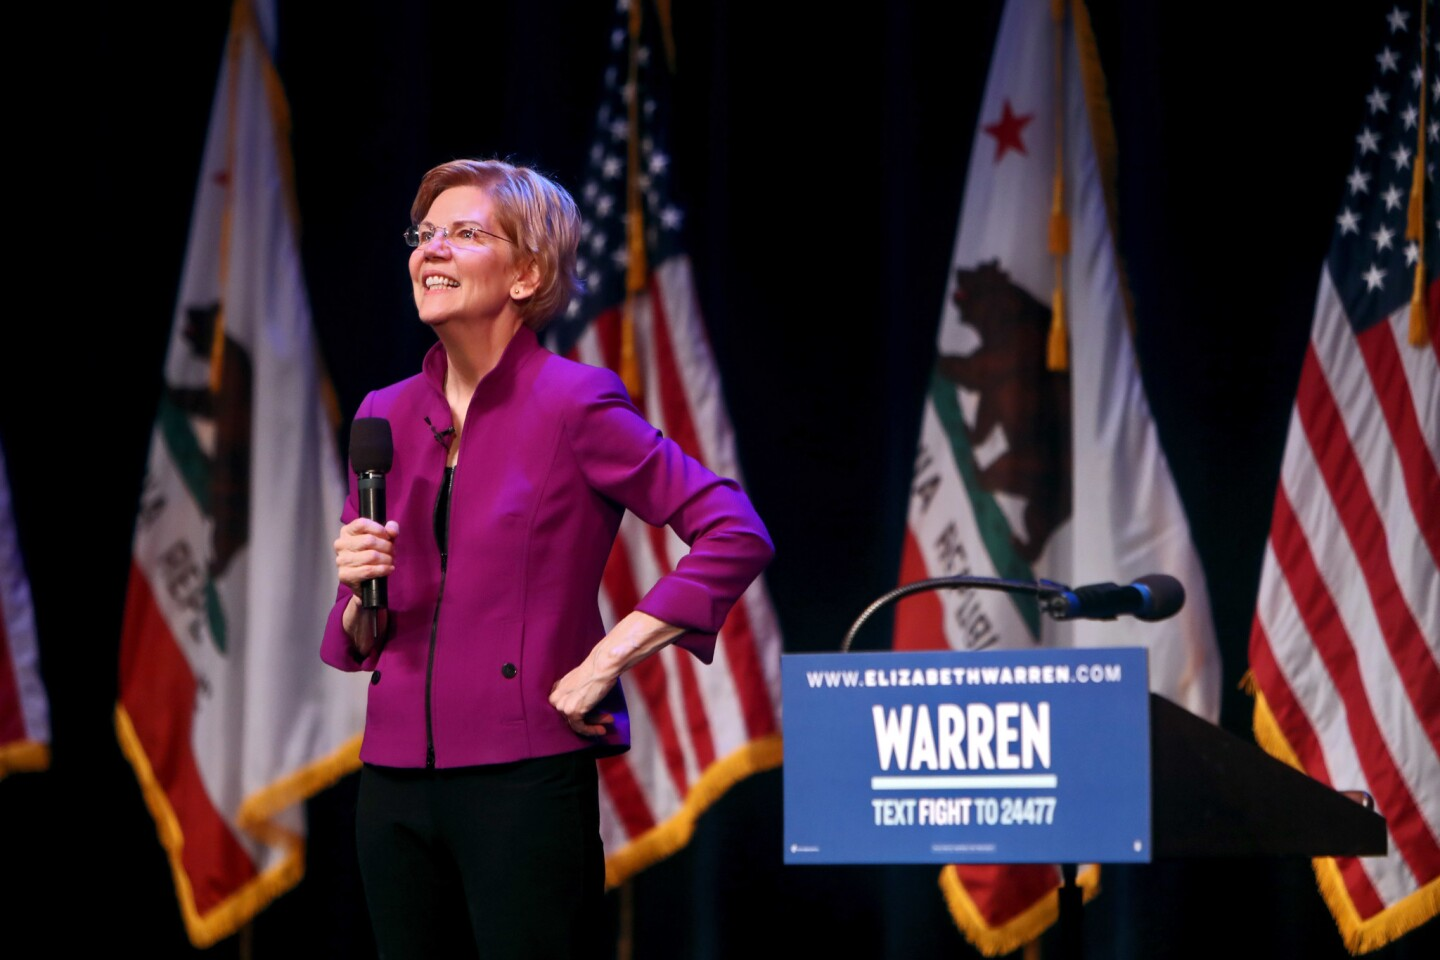 Photo Gallery: Senator and democratic presidential candidate Elizabeth Warren speaks at the Alex Theater